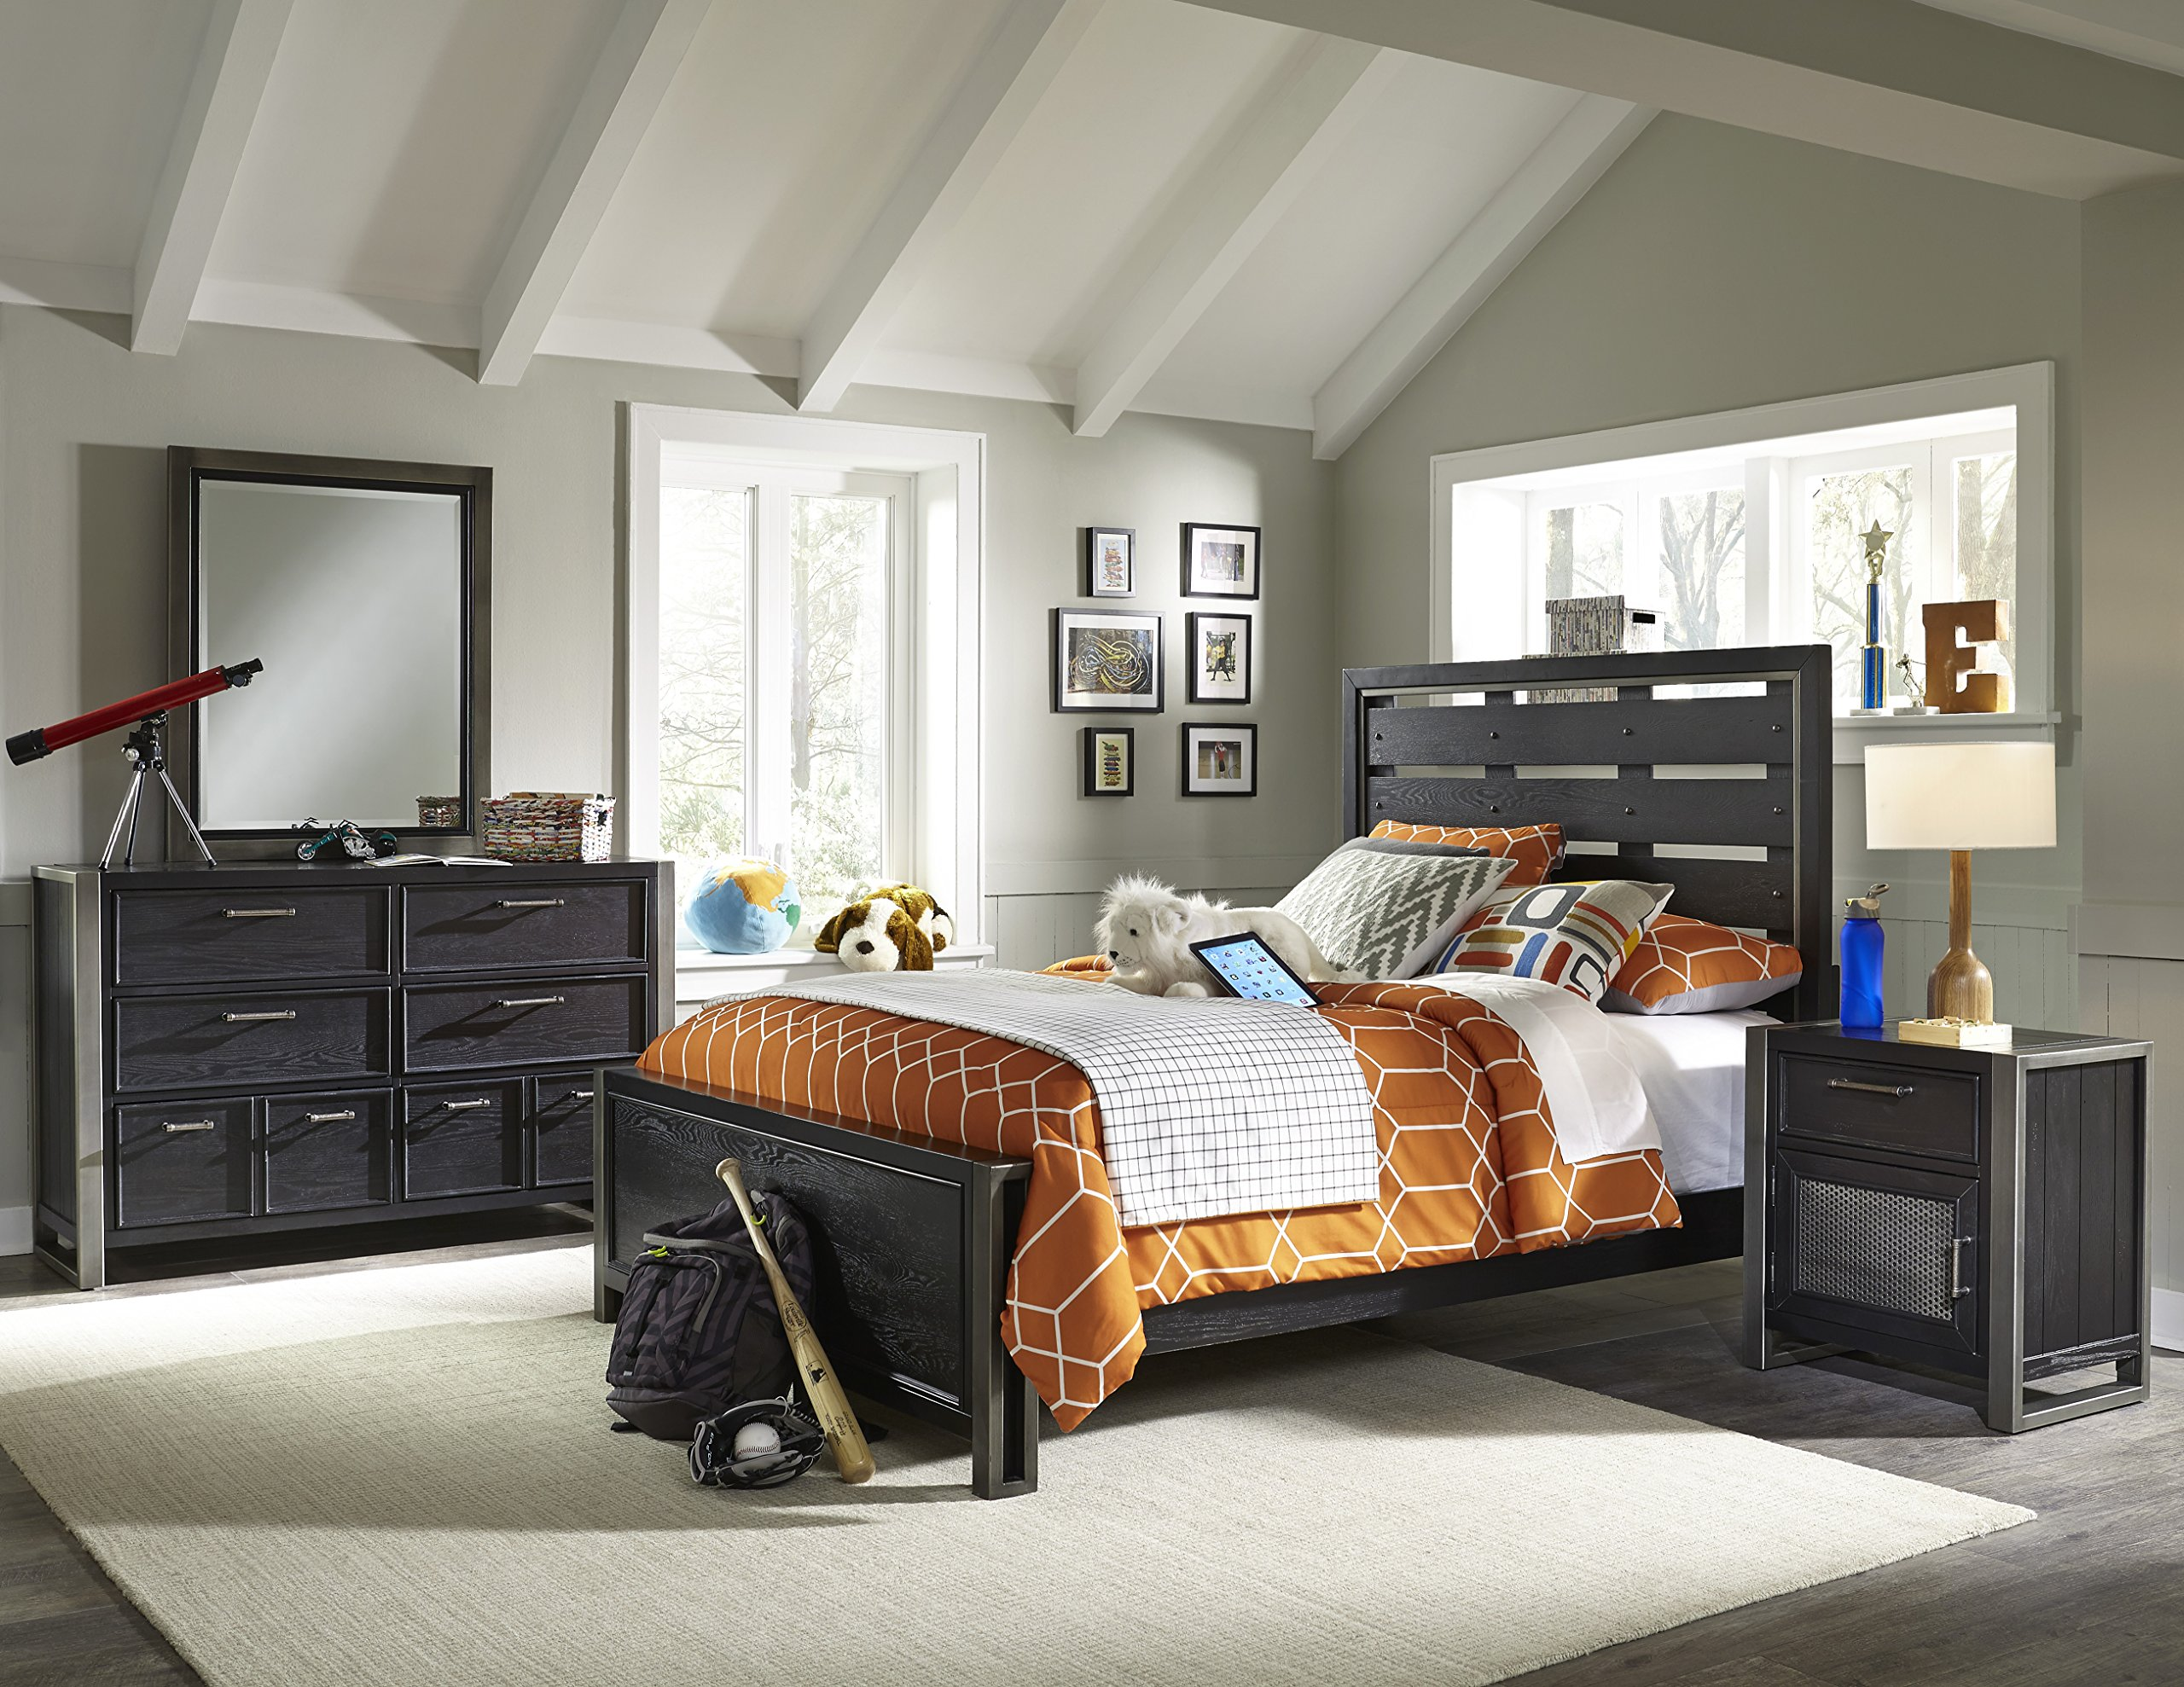 Pulaski Graphite Youth 4 Piece Bedroom Set, Twin by Pulaski